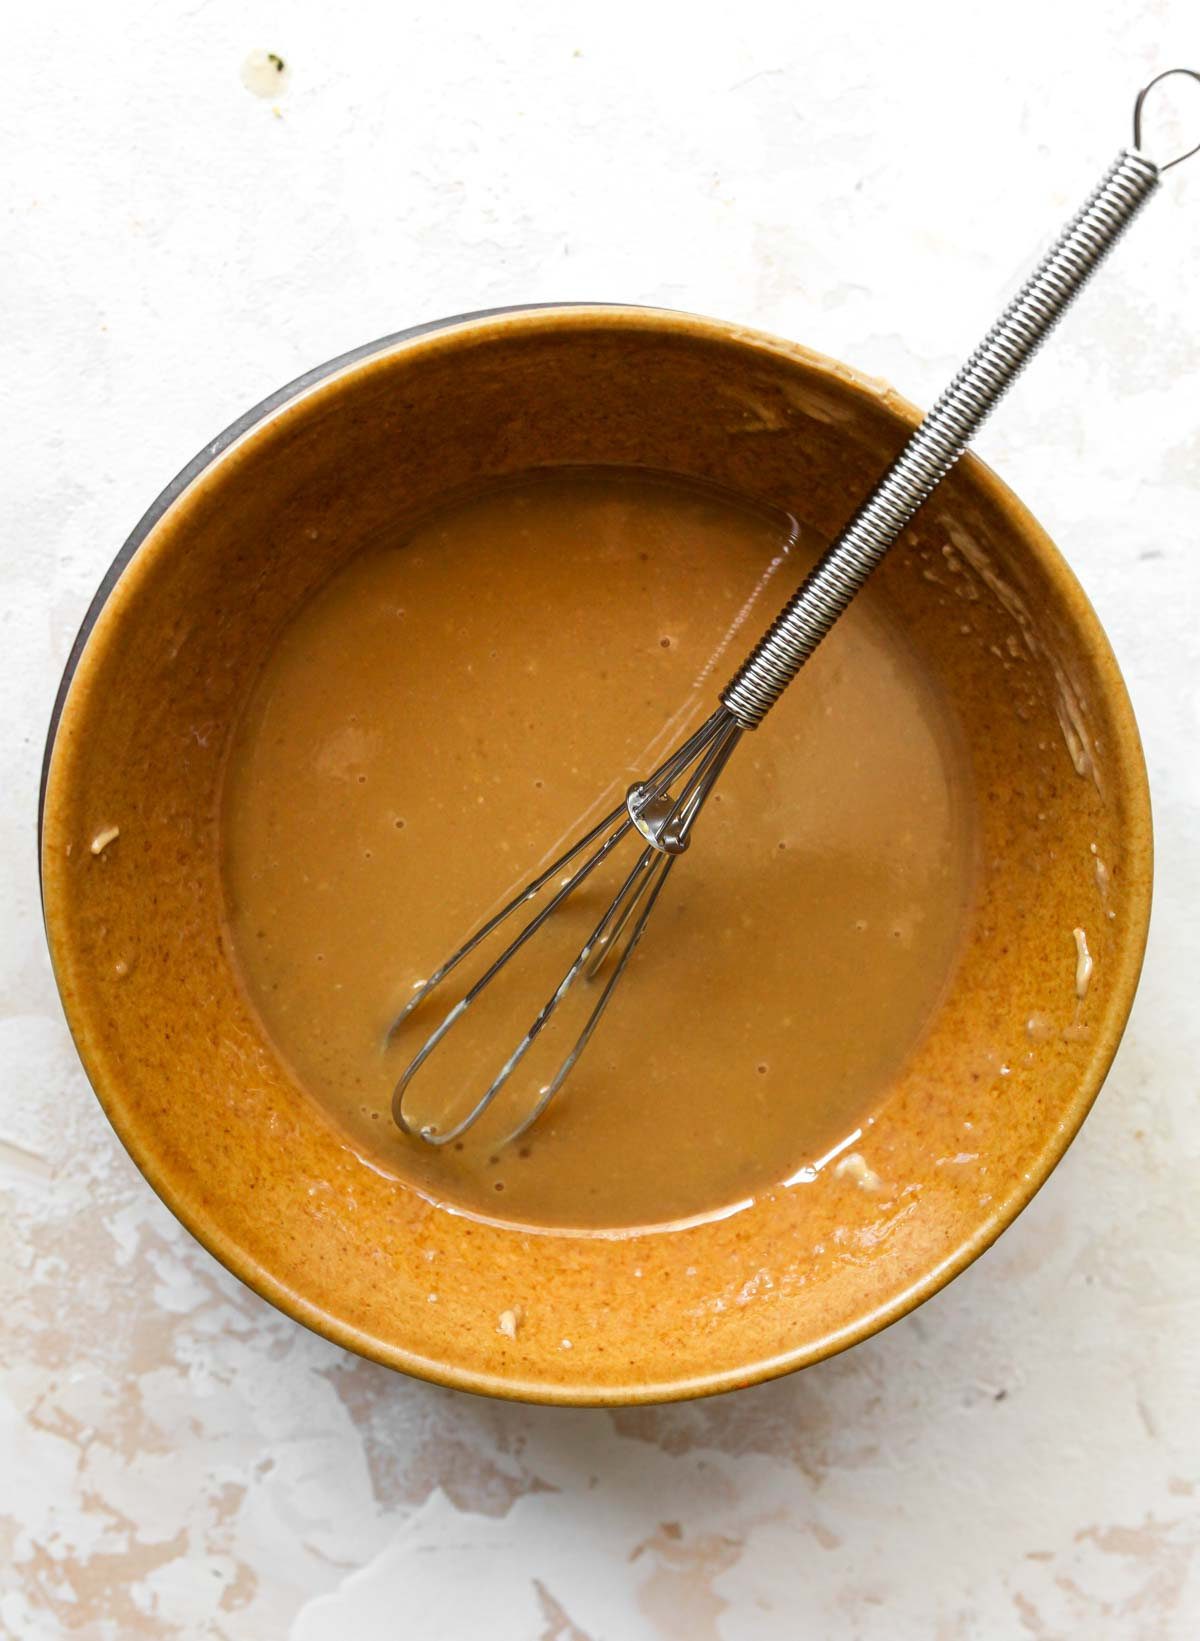 Maple vinaigrette being whisked in a gold bowl